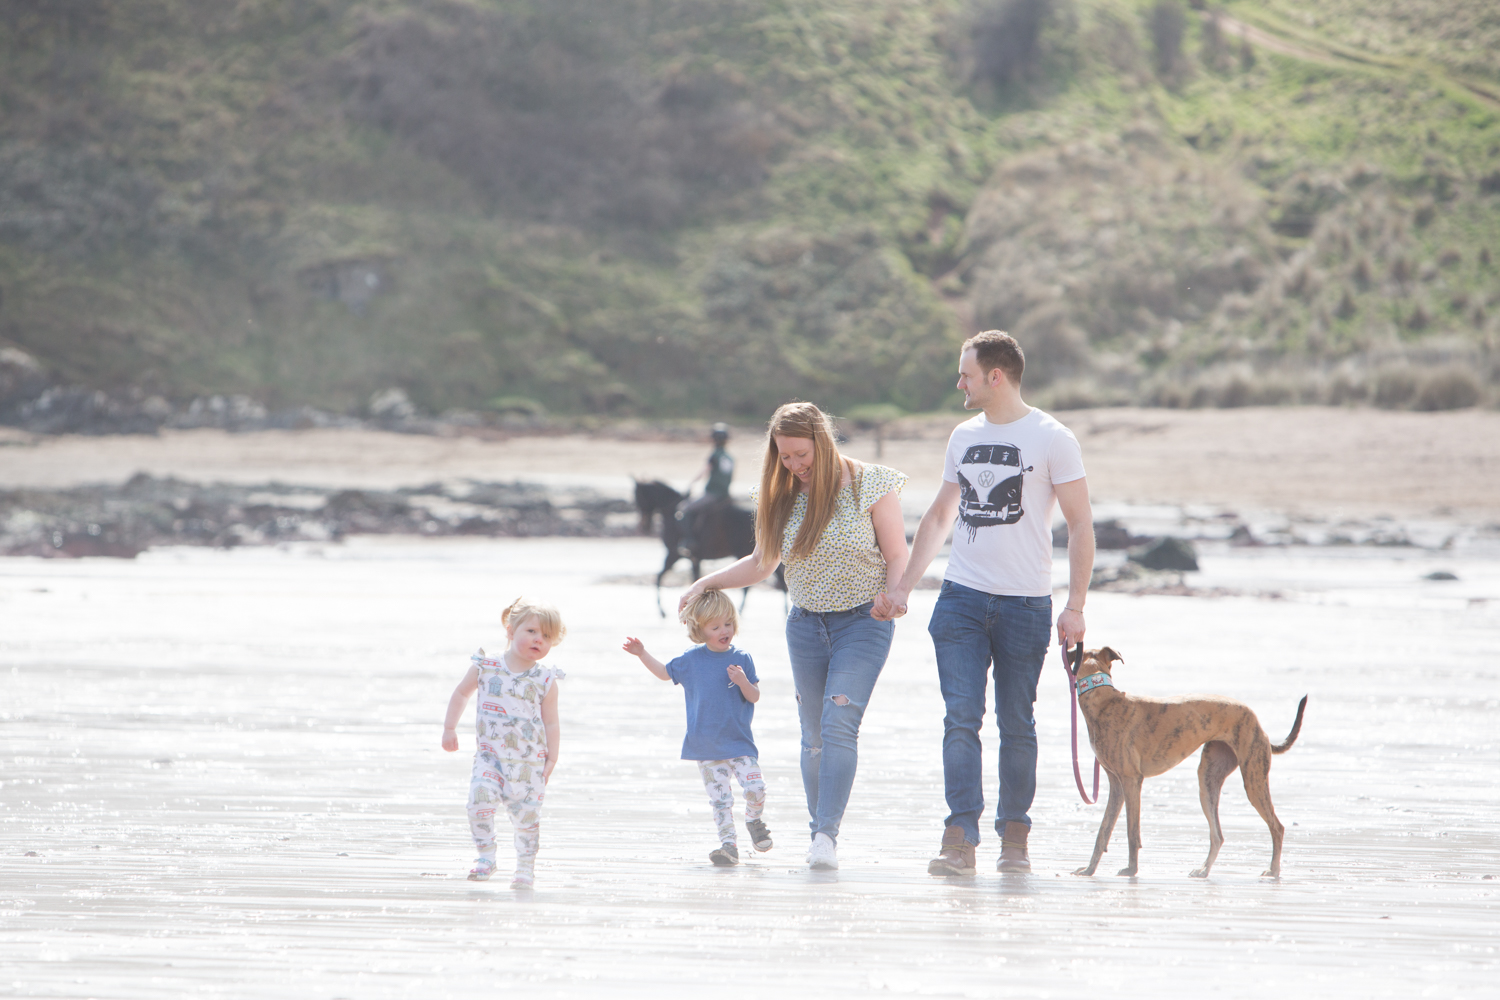 PICTORIAL_BERWICK_pre-wedding-family-couple-shoot-beach-coldingham-bay-birthday-dogs-grandparents-0614.jpg